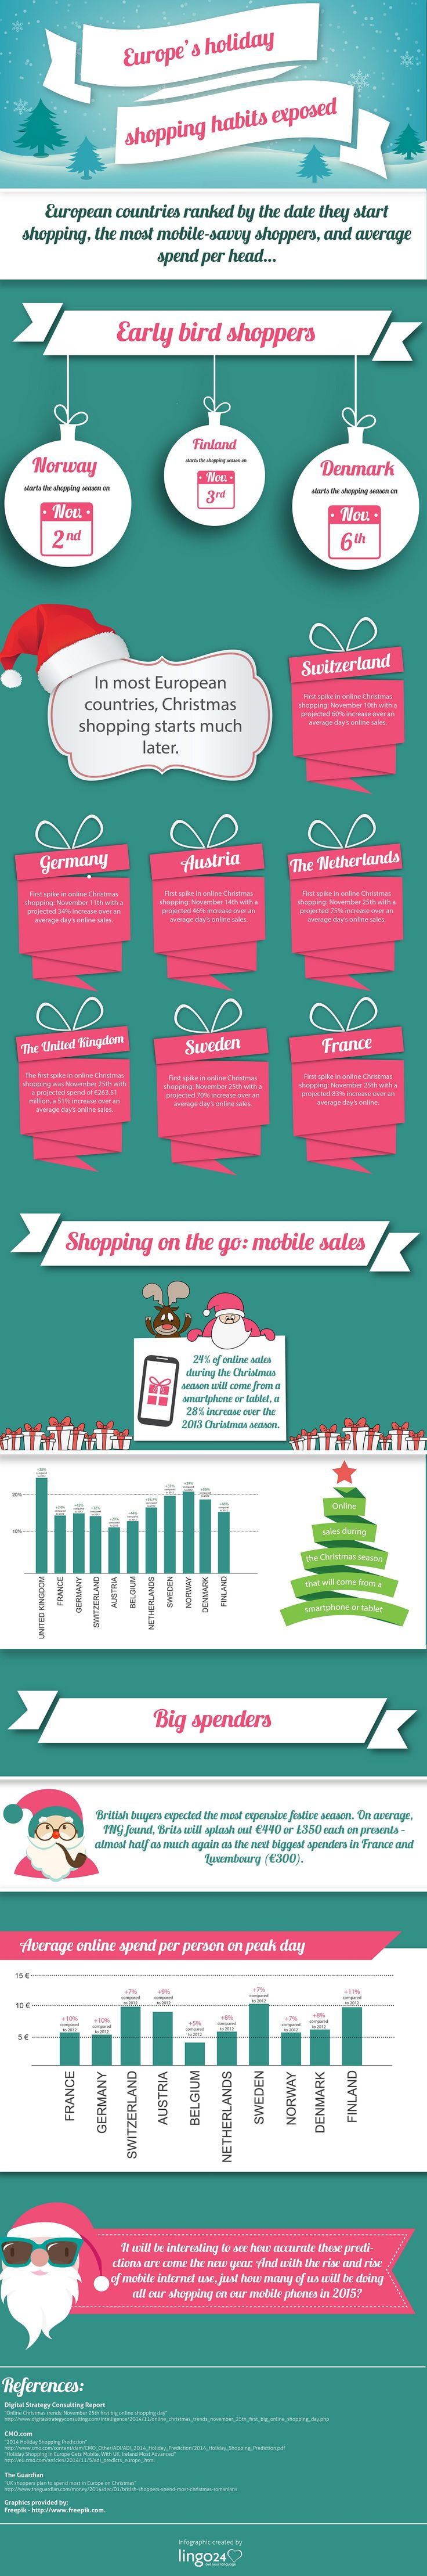 Some of us are guilty of going a bit overboard with Christmas shopping, while others are much more economical. Ever thought how our European neighbours' habits compare to our own? Our new #infographic looks at consumer e-commerce trends across Europe including who starts shopping first, who spends most, and mobiles sales trends.